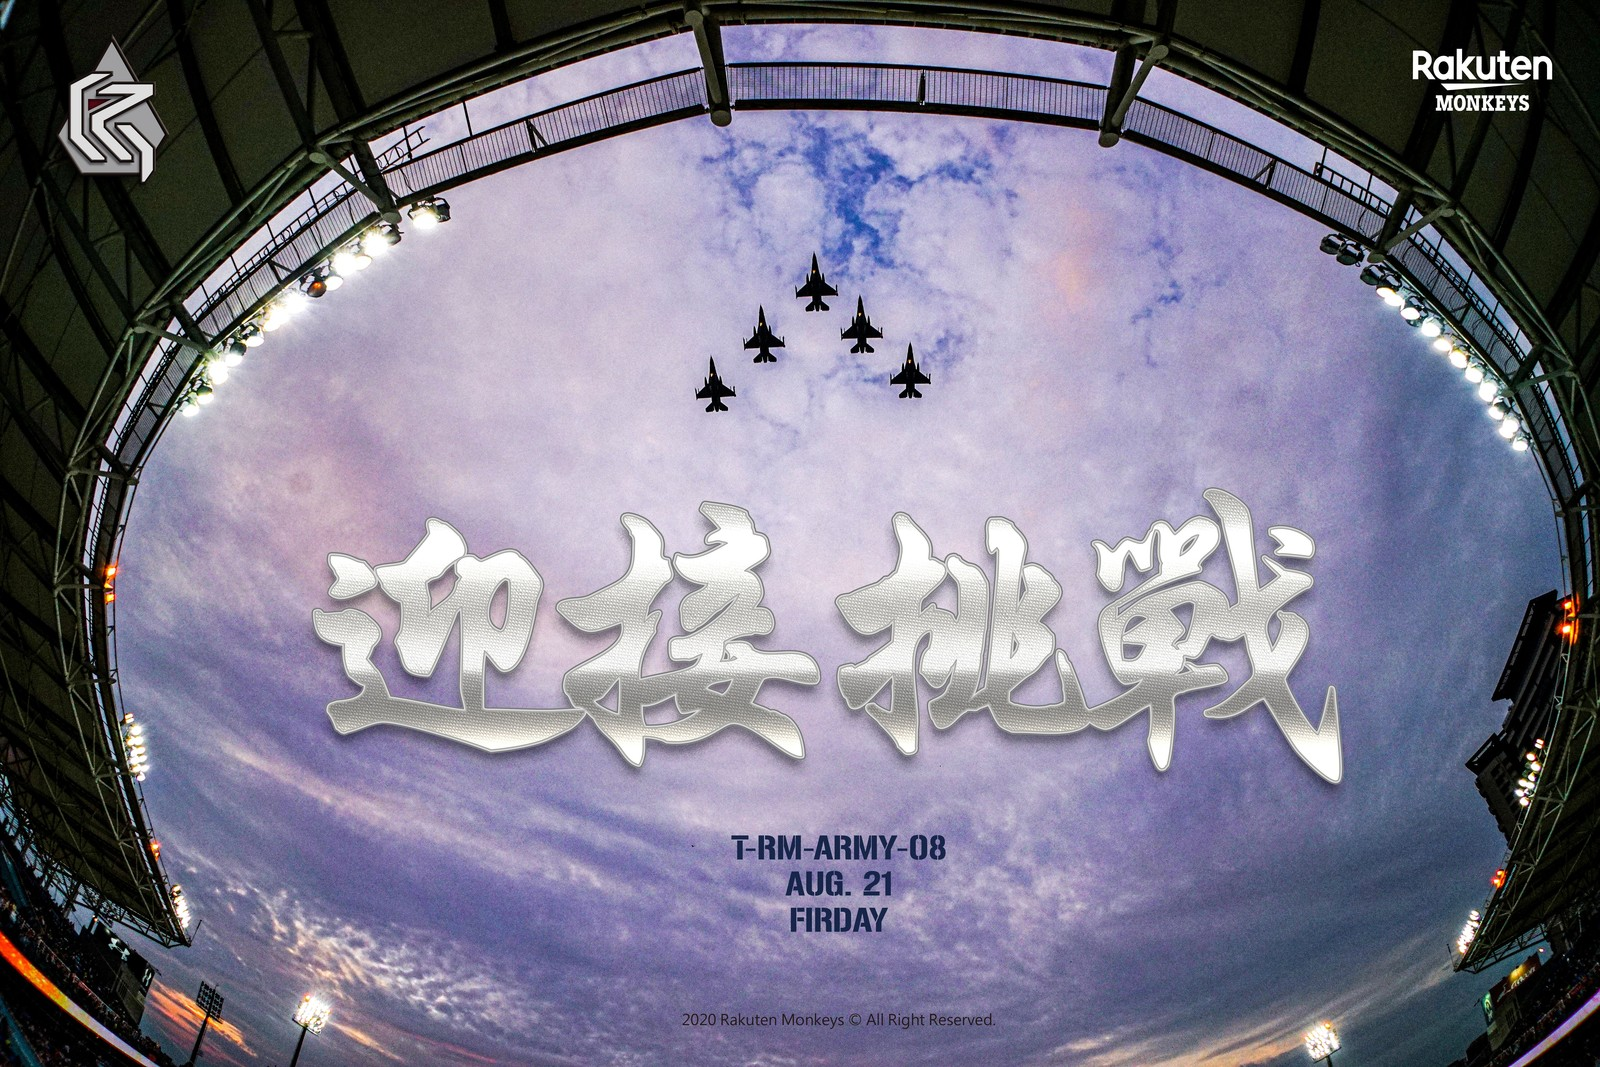 M-2000s Flyover Heralded Armed Forces Day Baseball Game